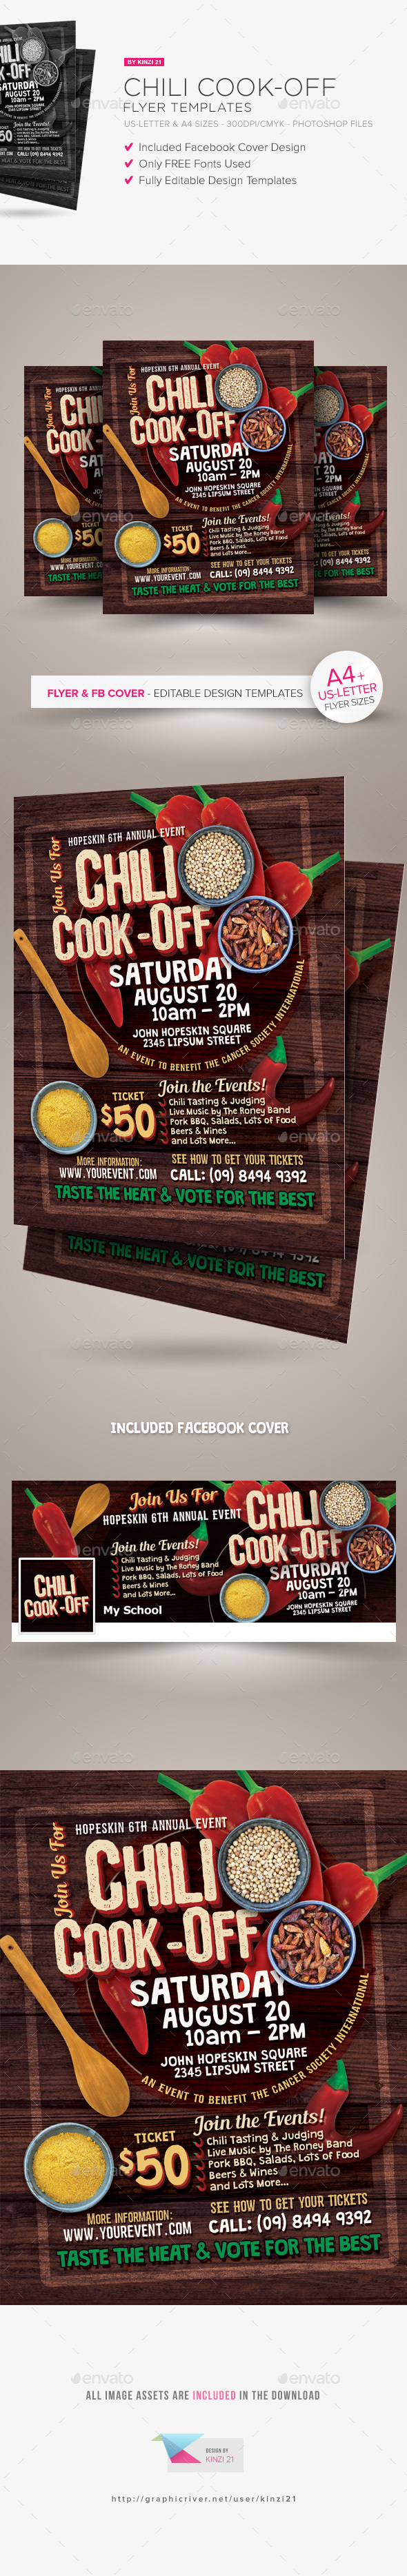 chili cook off flyer template by kinzi21 graphicriver. Black Bedroom Furniture Sets. Home Design Ideas